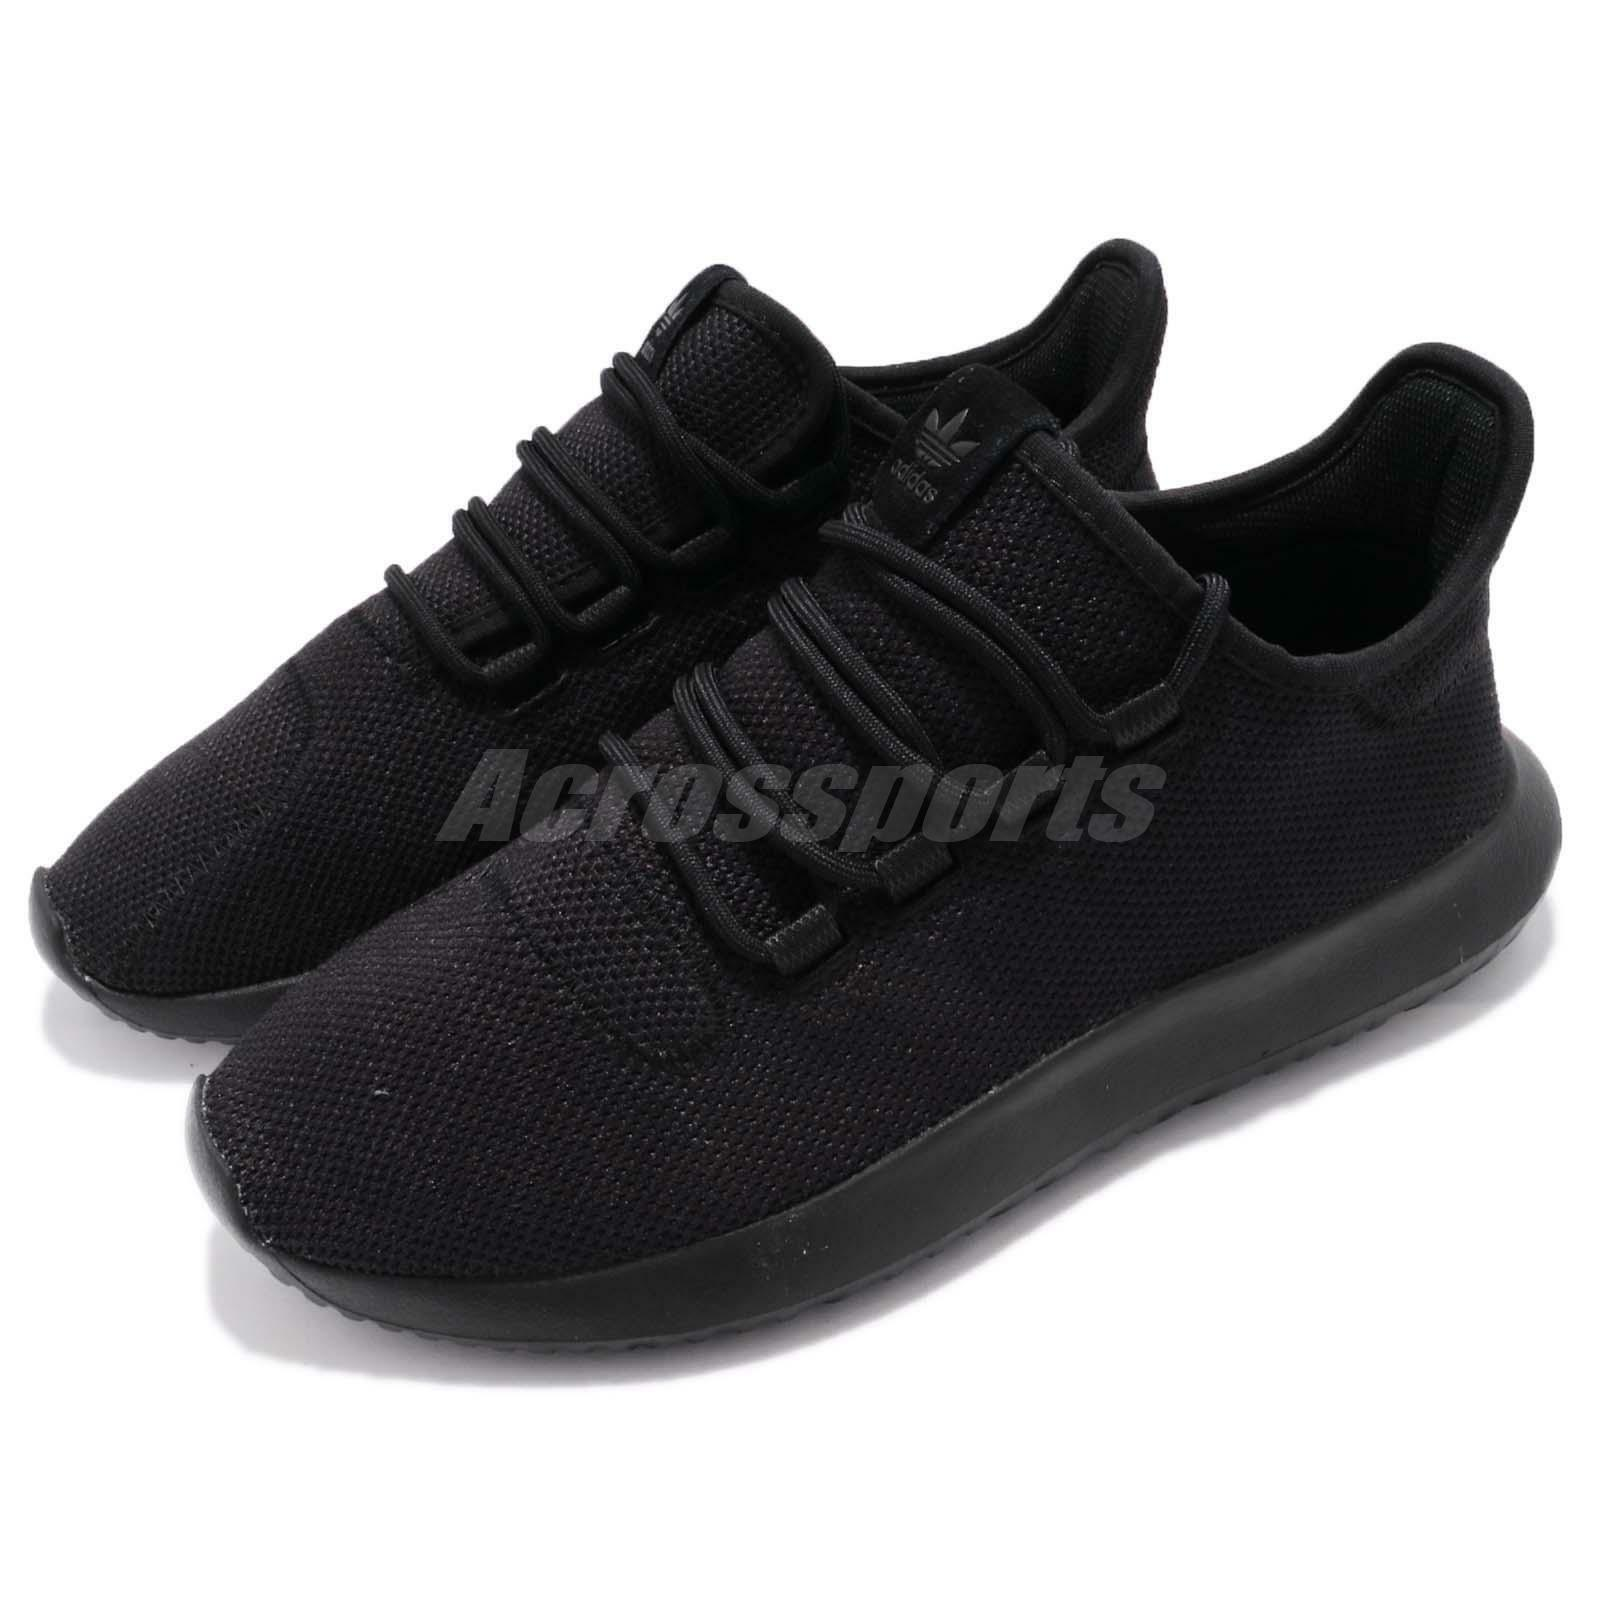 adidas Originals Tubular Shadow Sneakers Triple Black Men Running Shoes Sneakers Shadow CG4562 f1e8a4